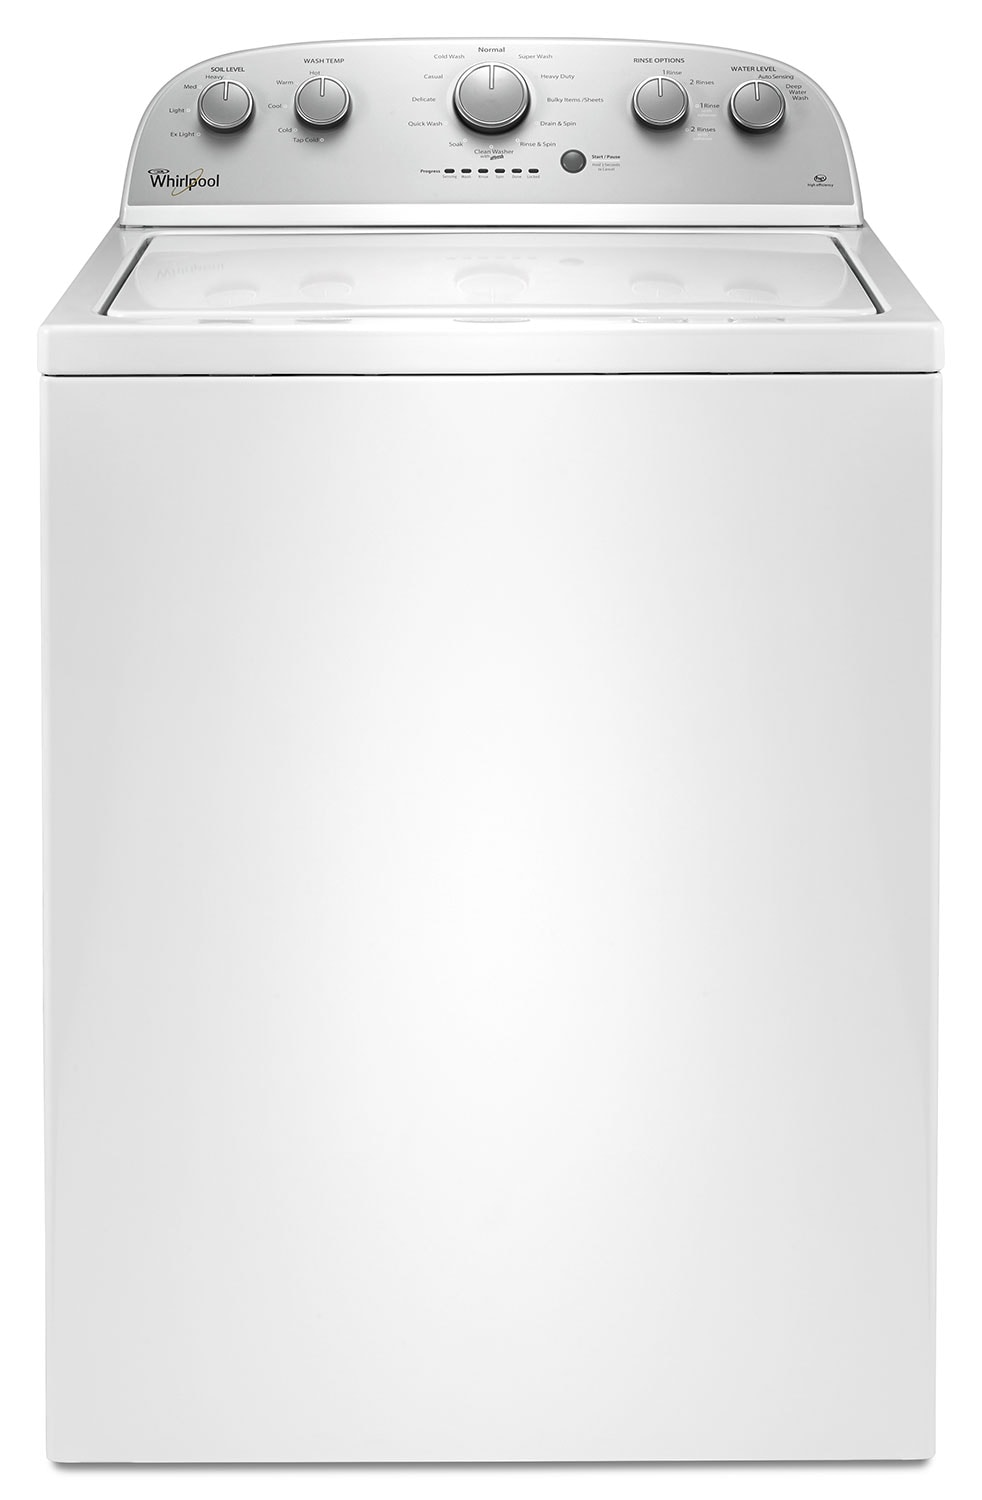 Whirlpool 3.5 Cu. Ft. Top-Load Washer – WTW4816FW